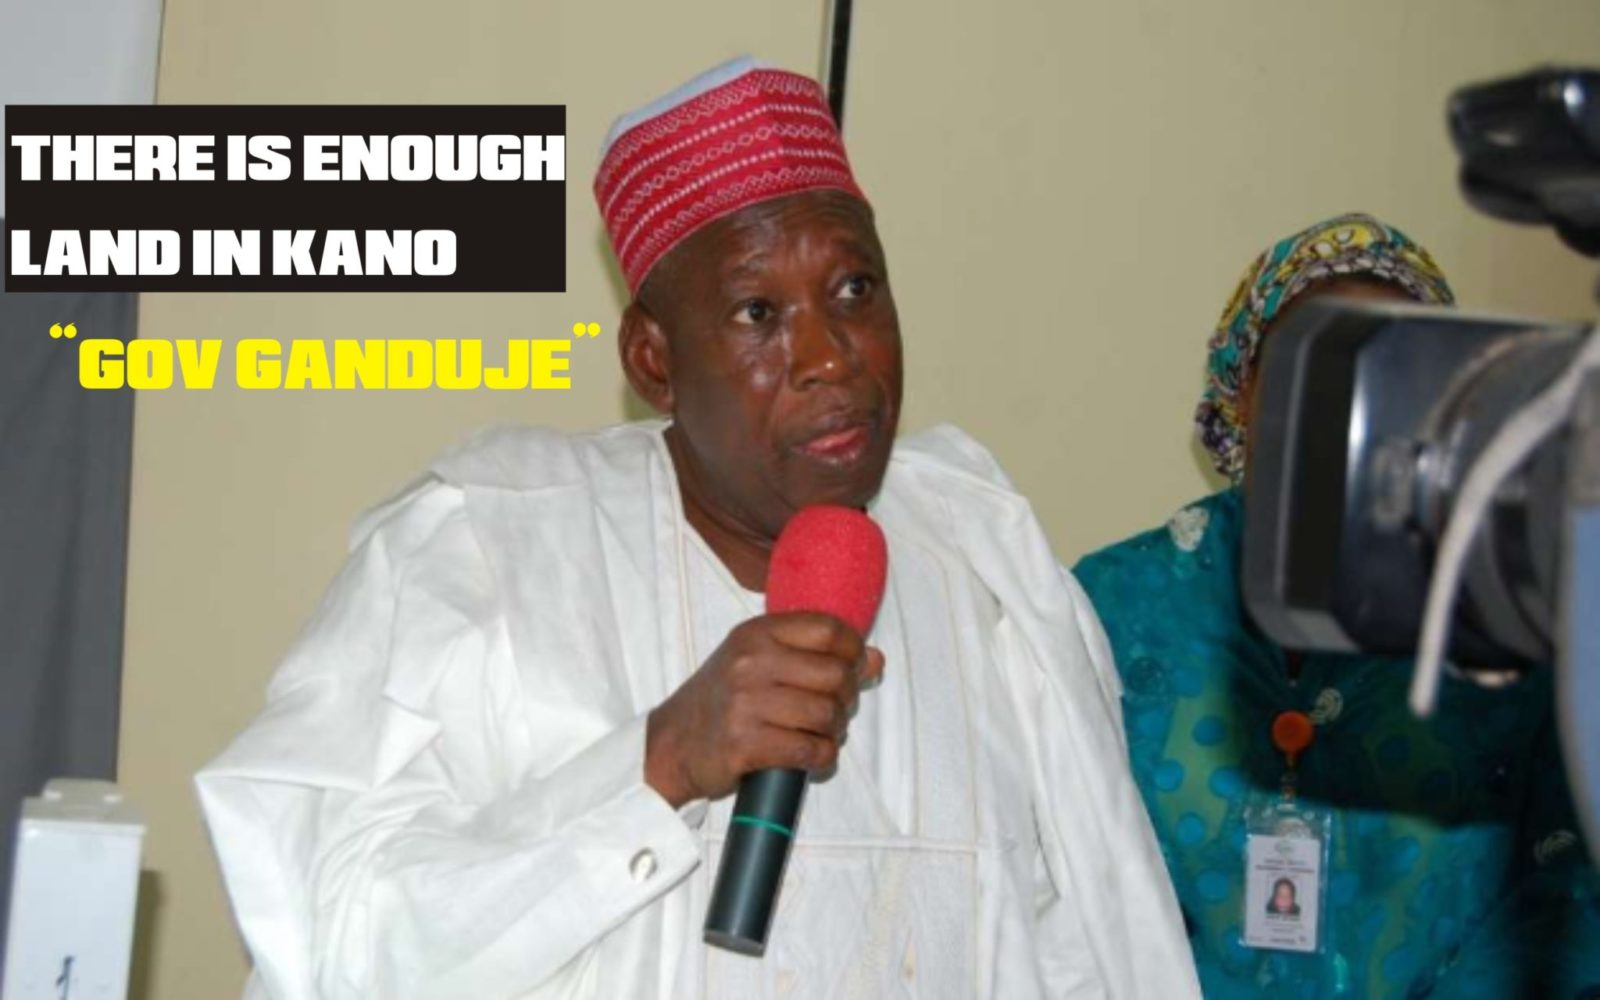 All herdsmen should stop killing and relocate to Kano- Governor Ganduje Says